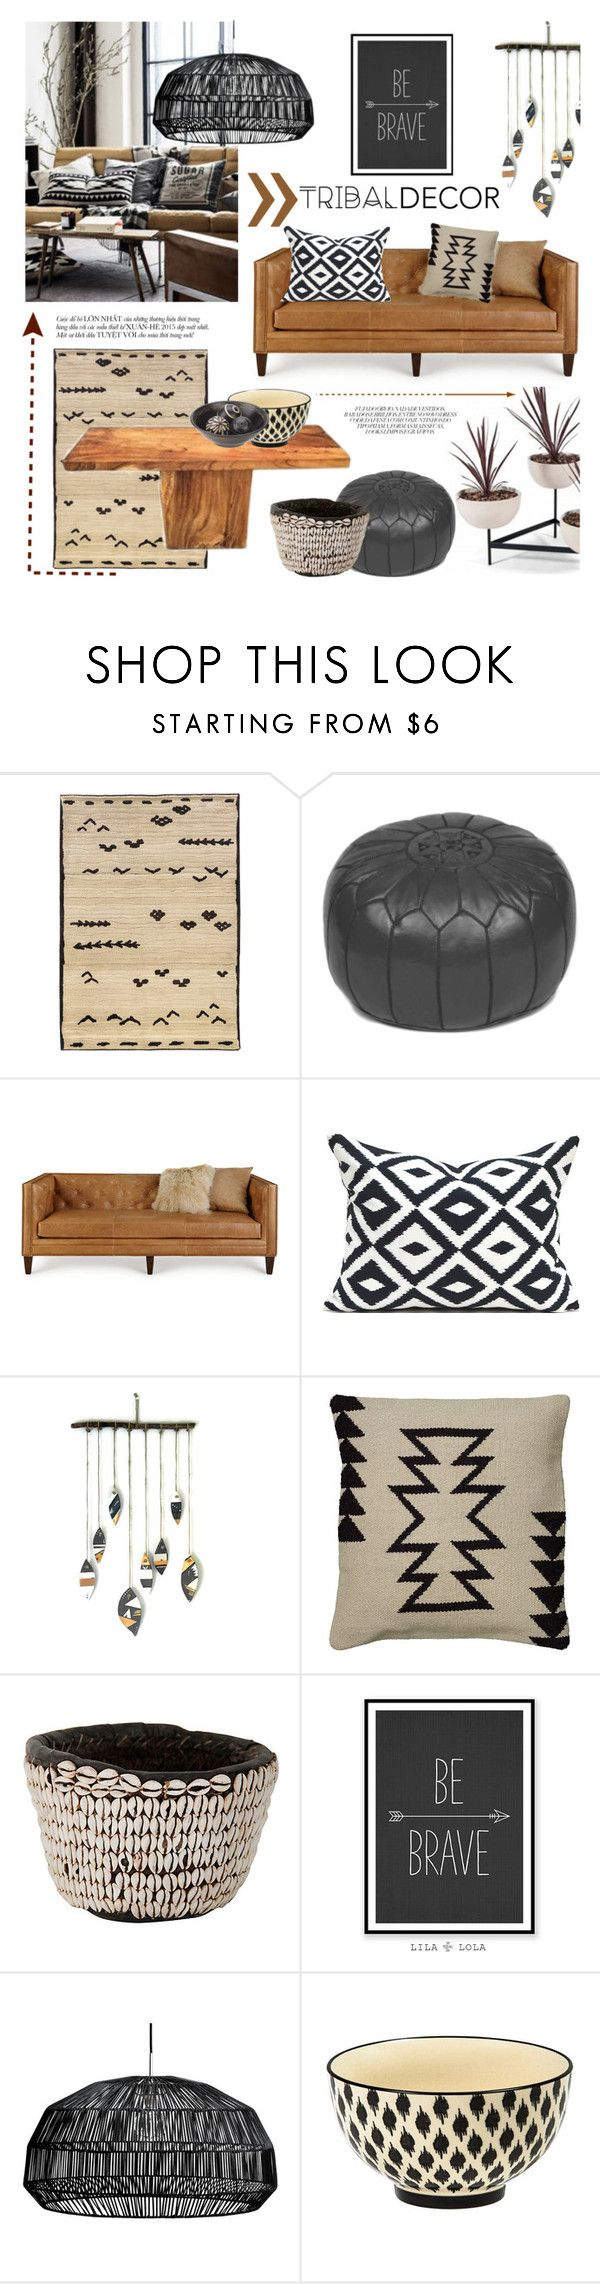 Tribal Decor By Helenevlacho On Polyvore Featuring Interior Interiors Design